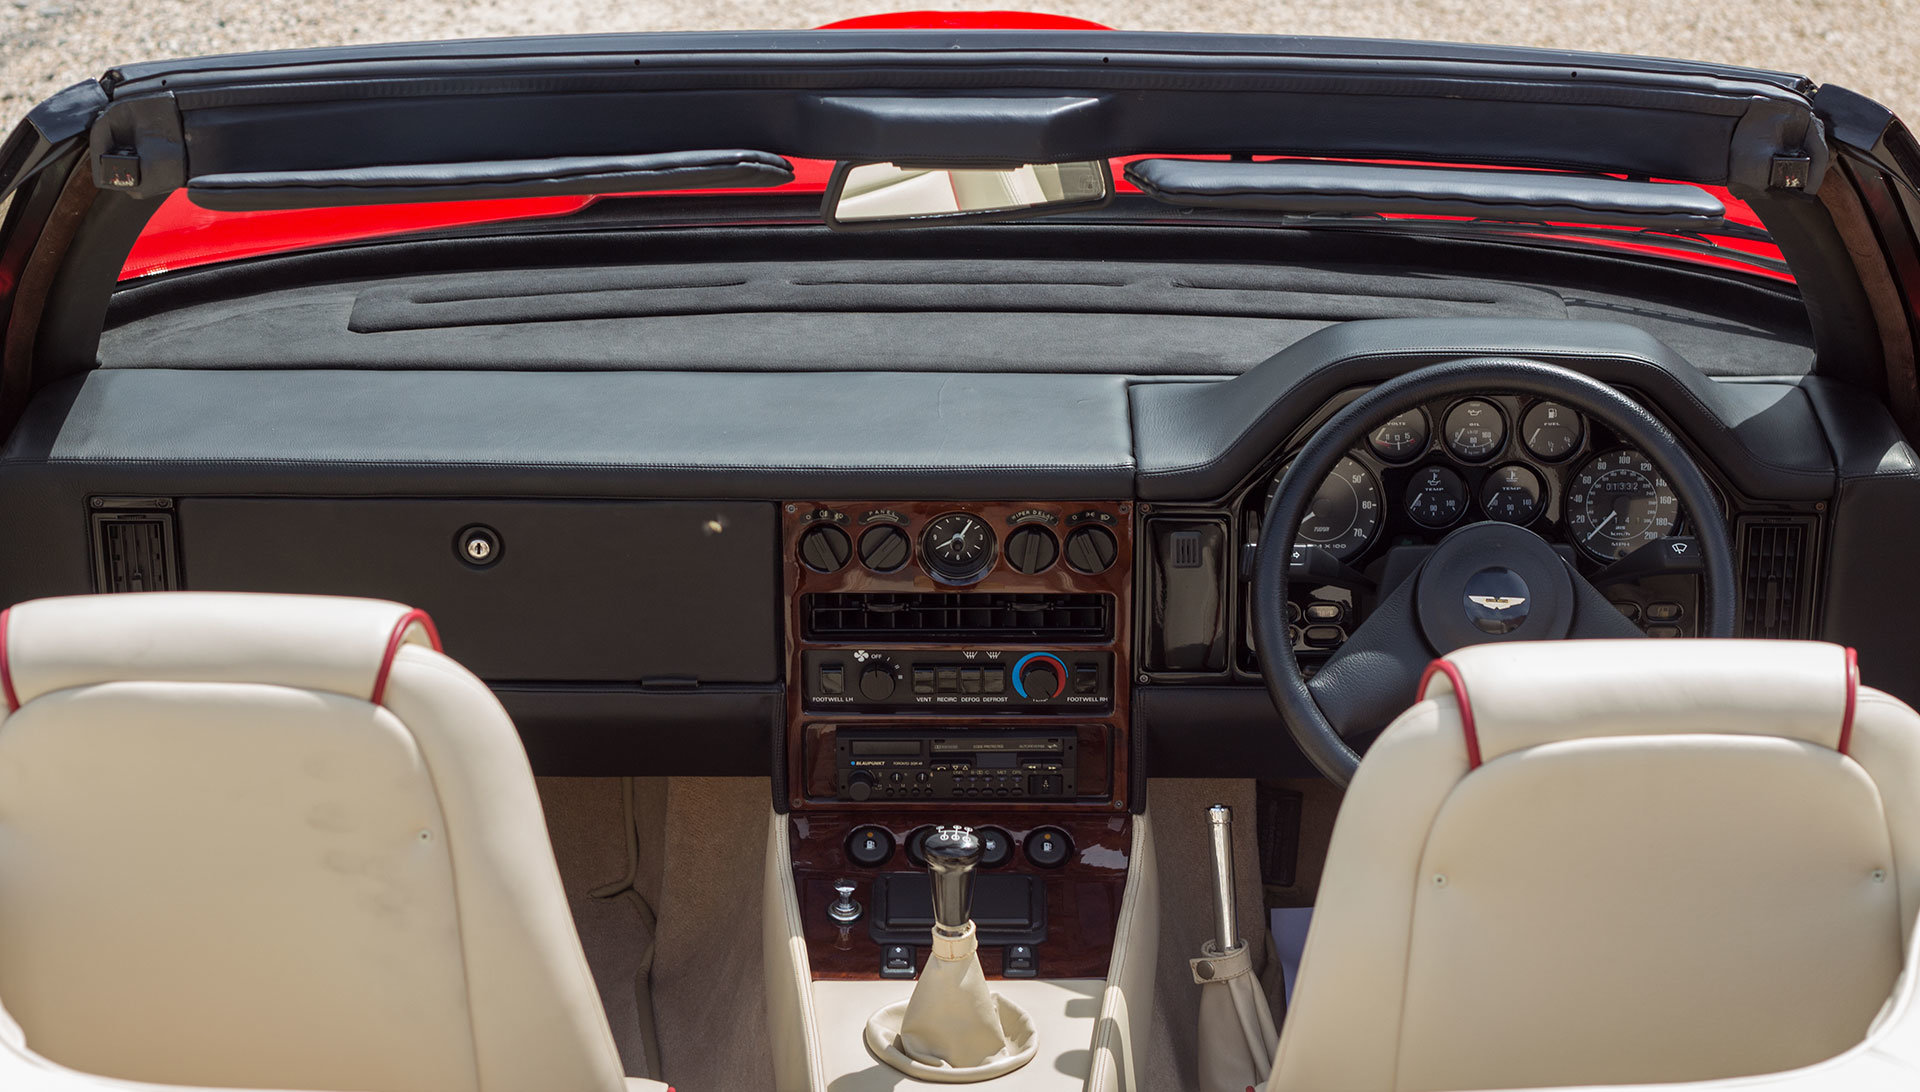 1989 Aston Martin V8 Vantage Volante Zagato 6.3 Litre For Sale (picture 15 of 24)